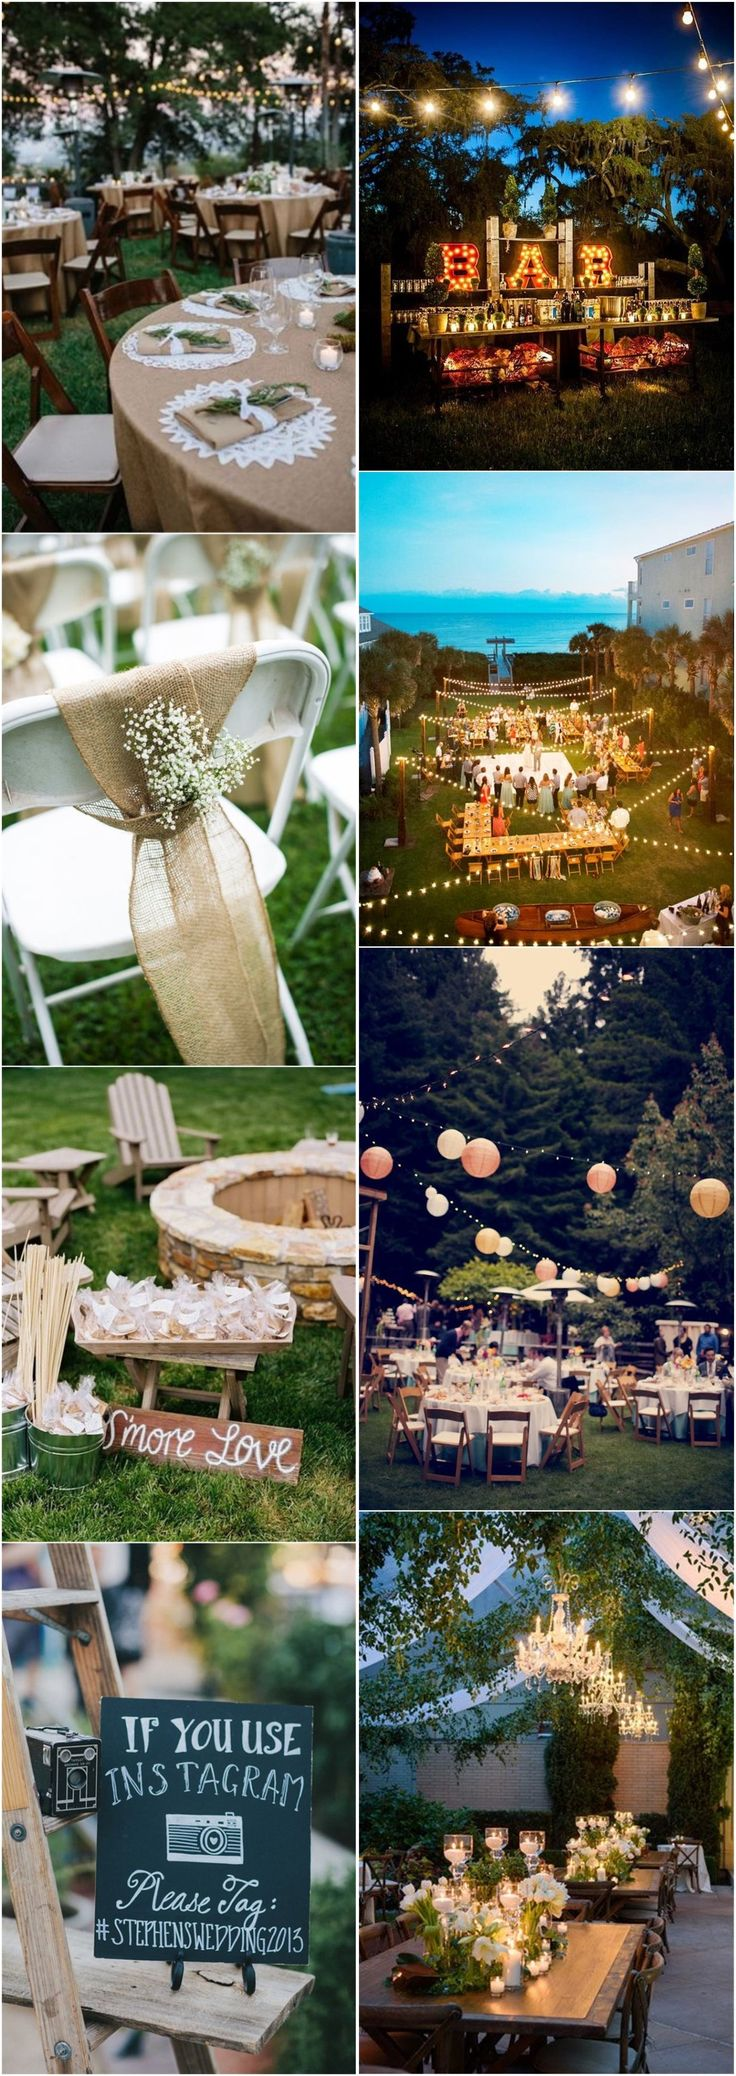 806 best rustic weddings images on pinterest rustic weddings